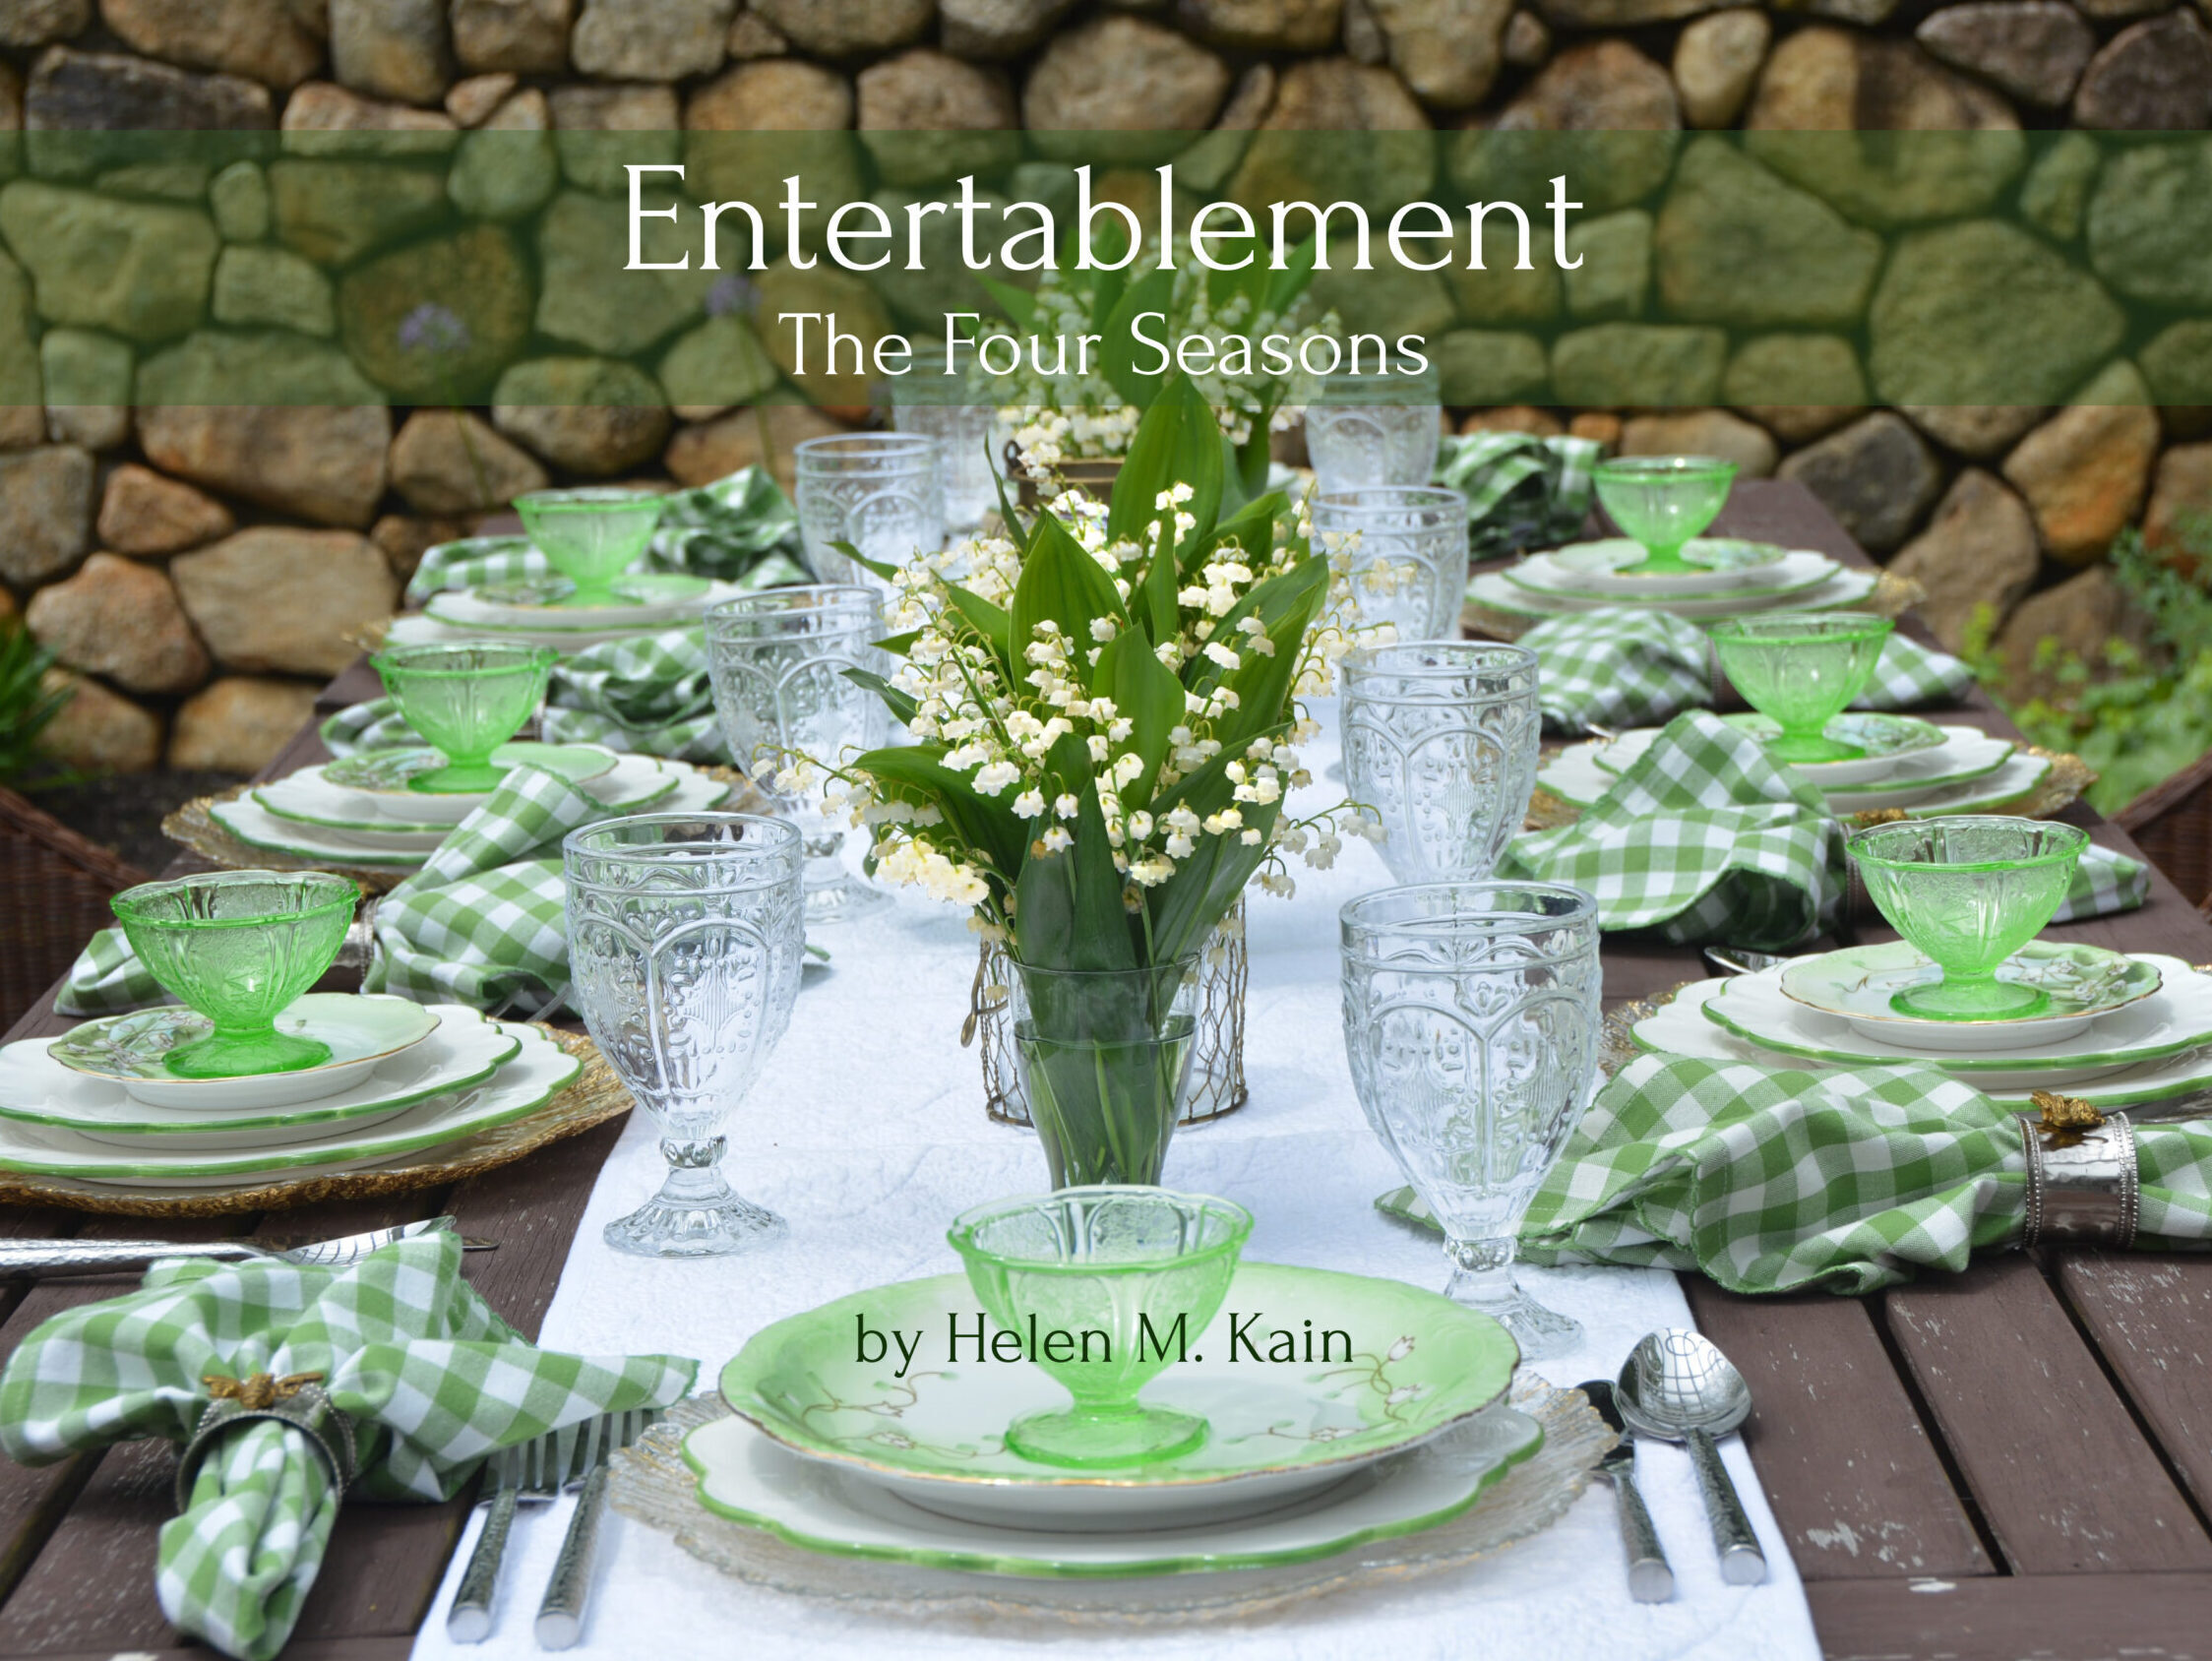 Entertablement – The Four Seasons is here!